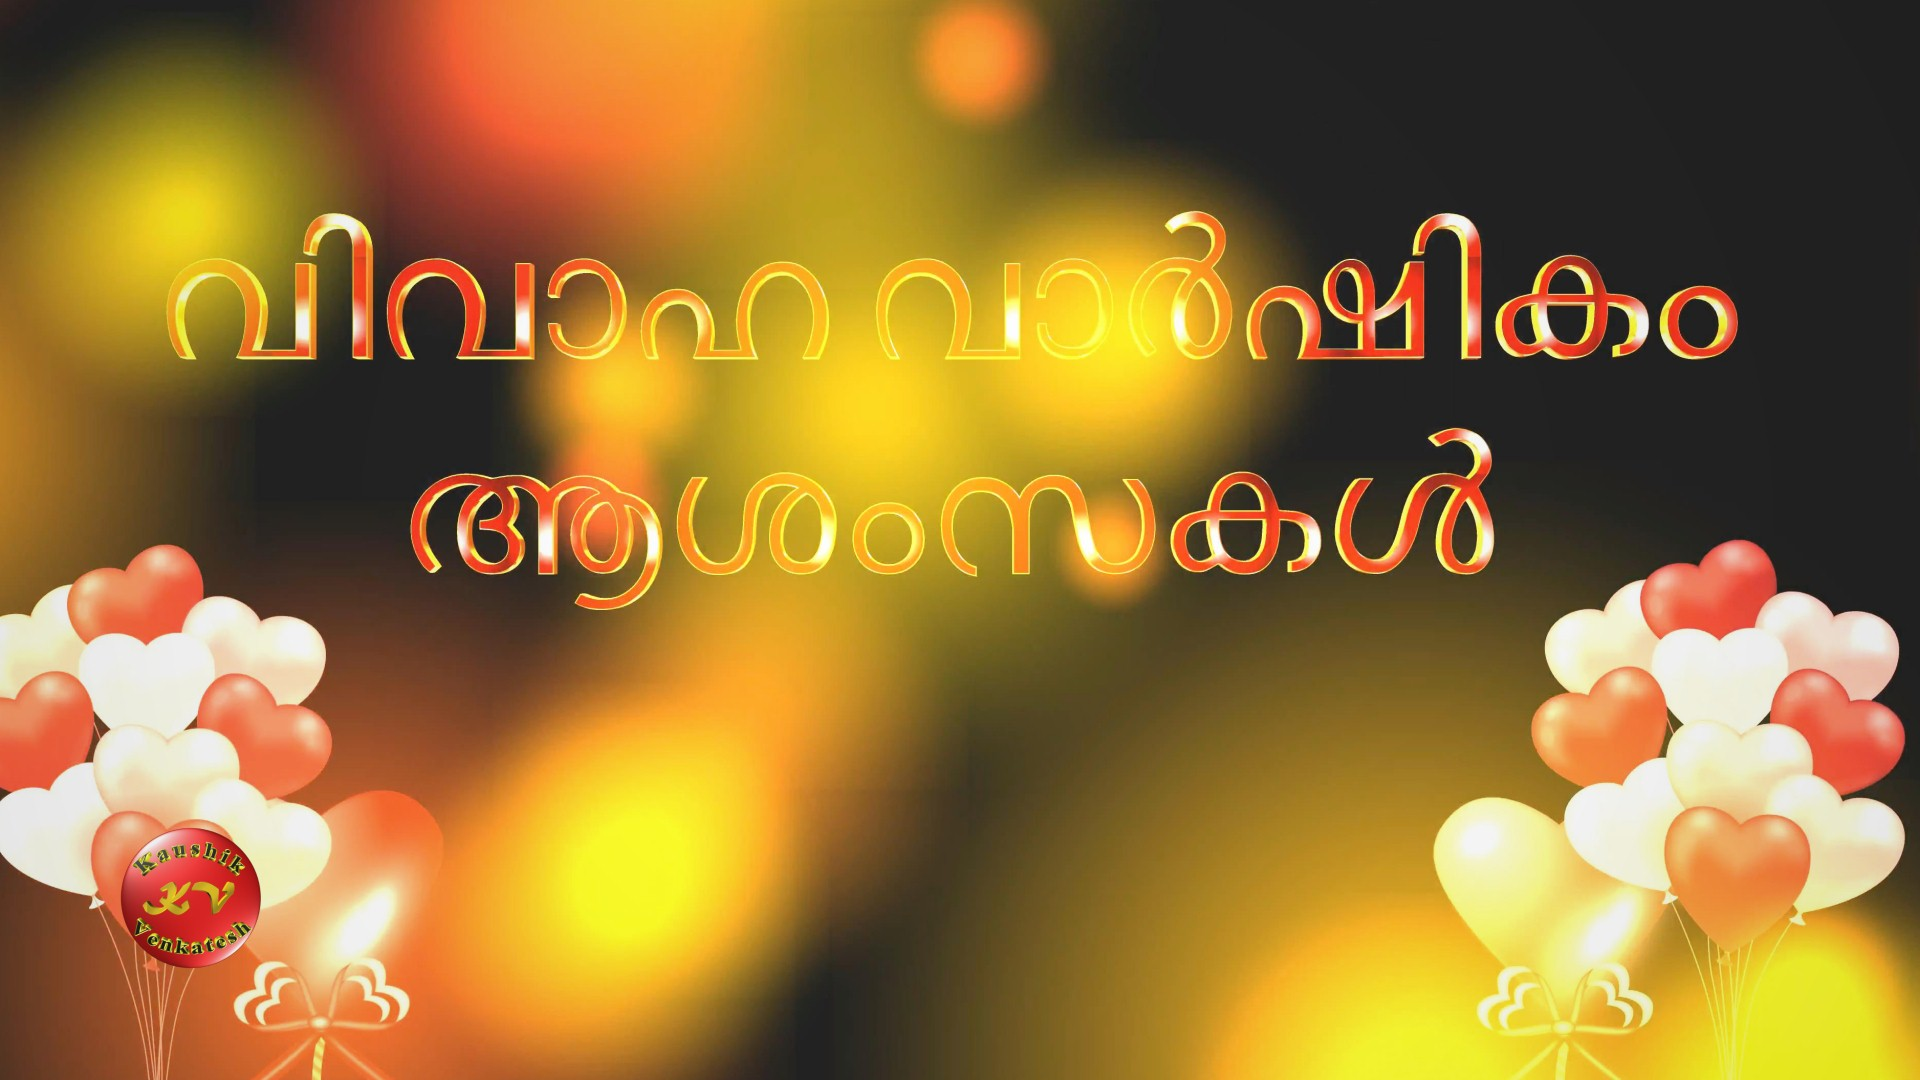 Greetings Image of Happy Wedding Anniversary Wishes in Malayalam